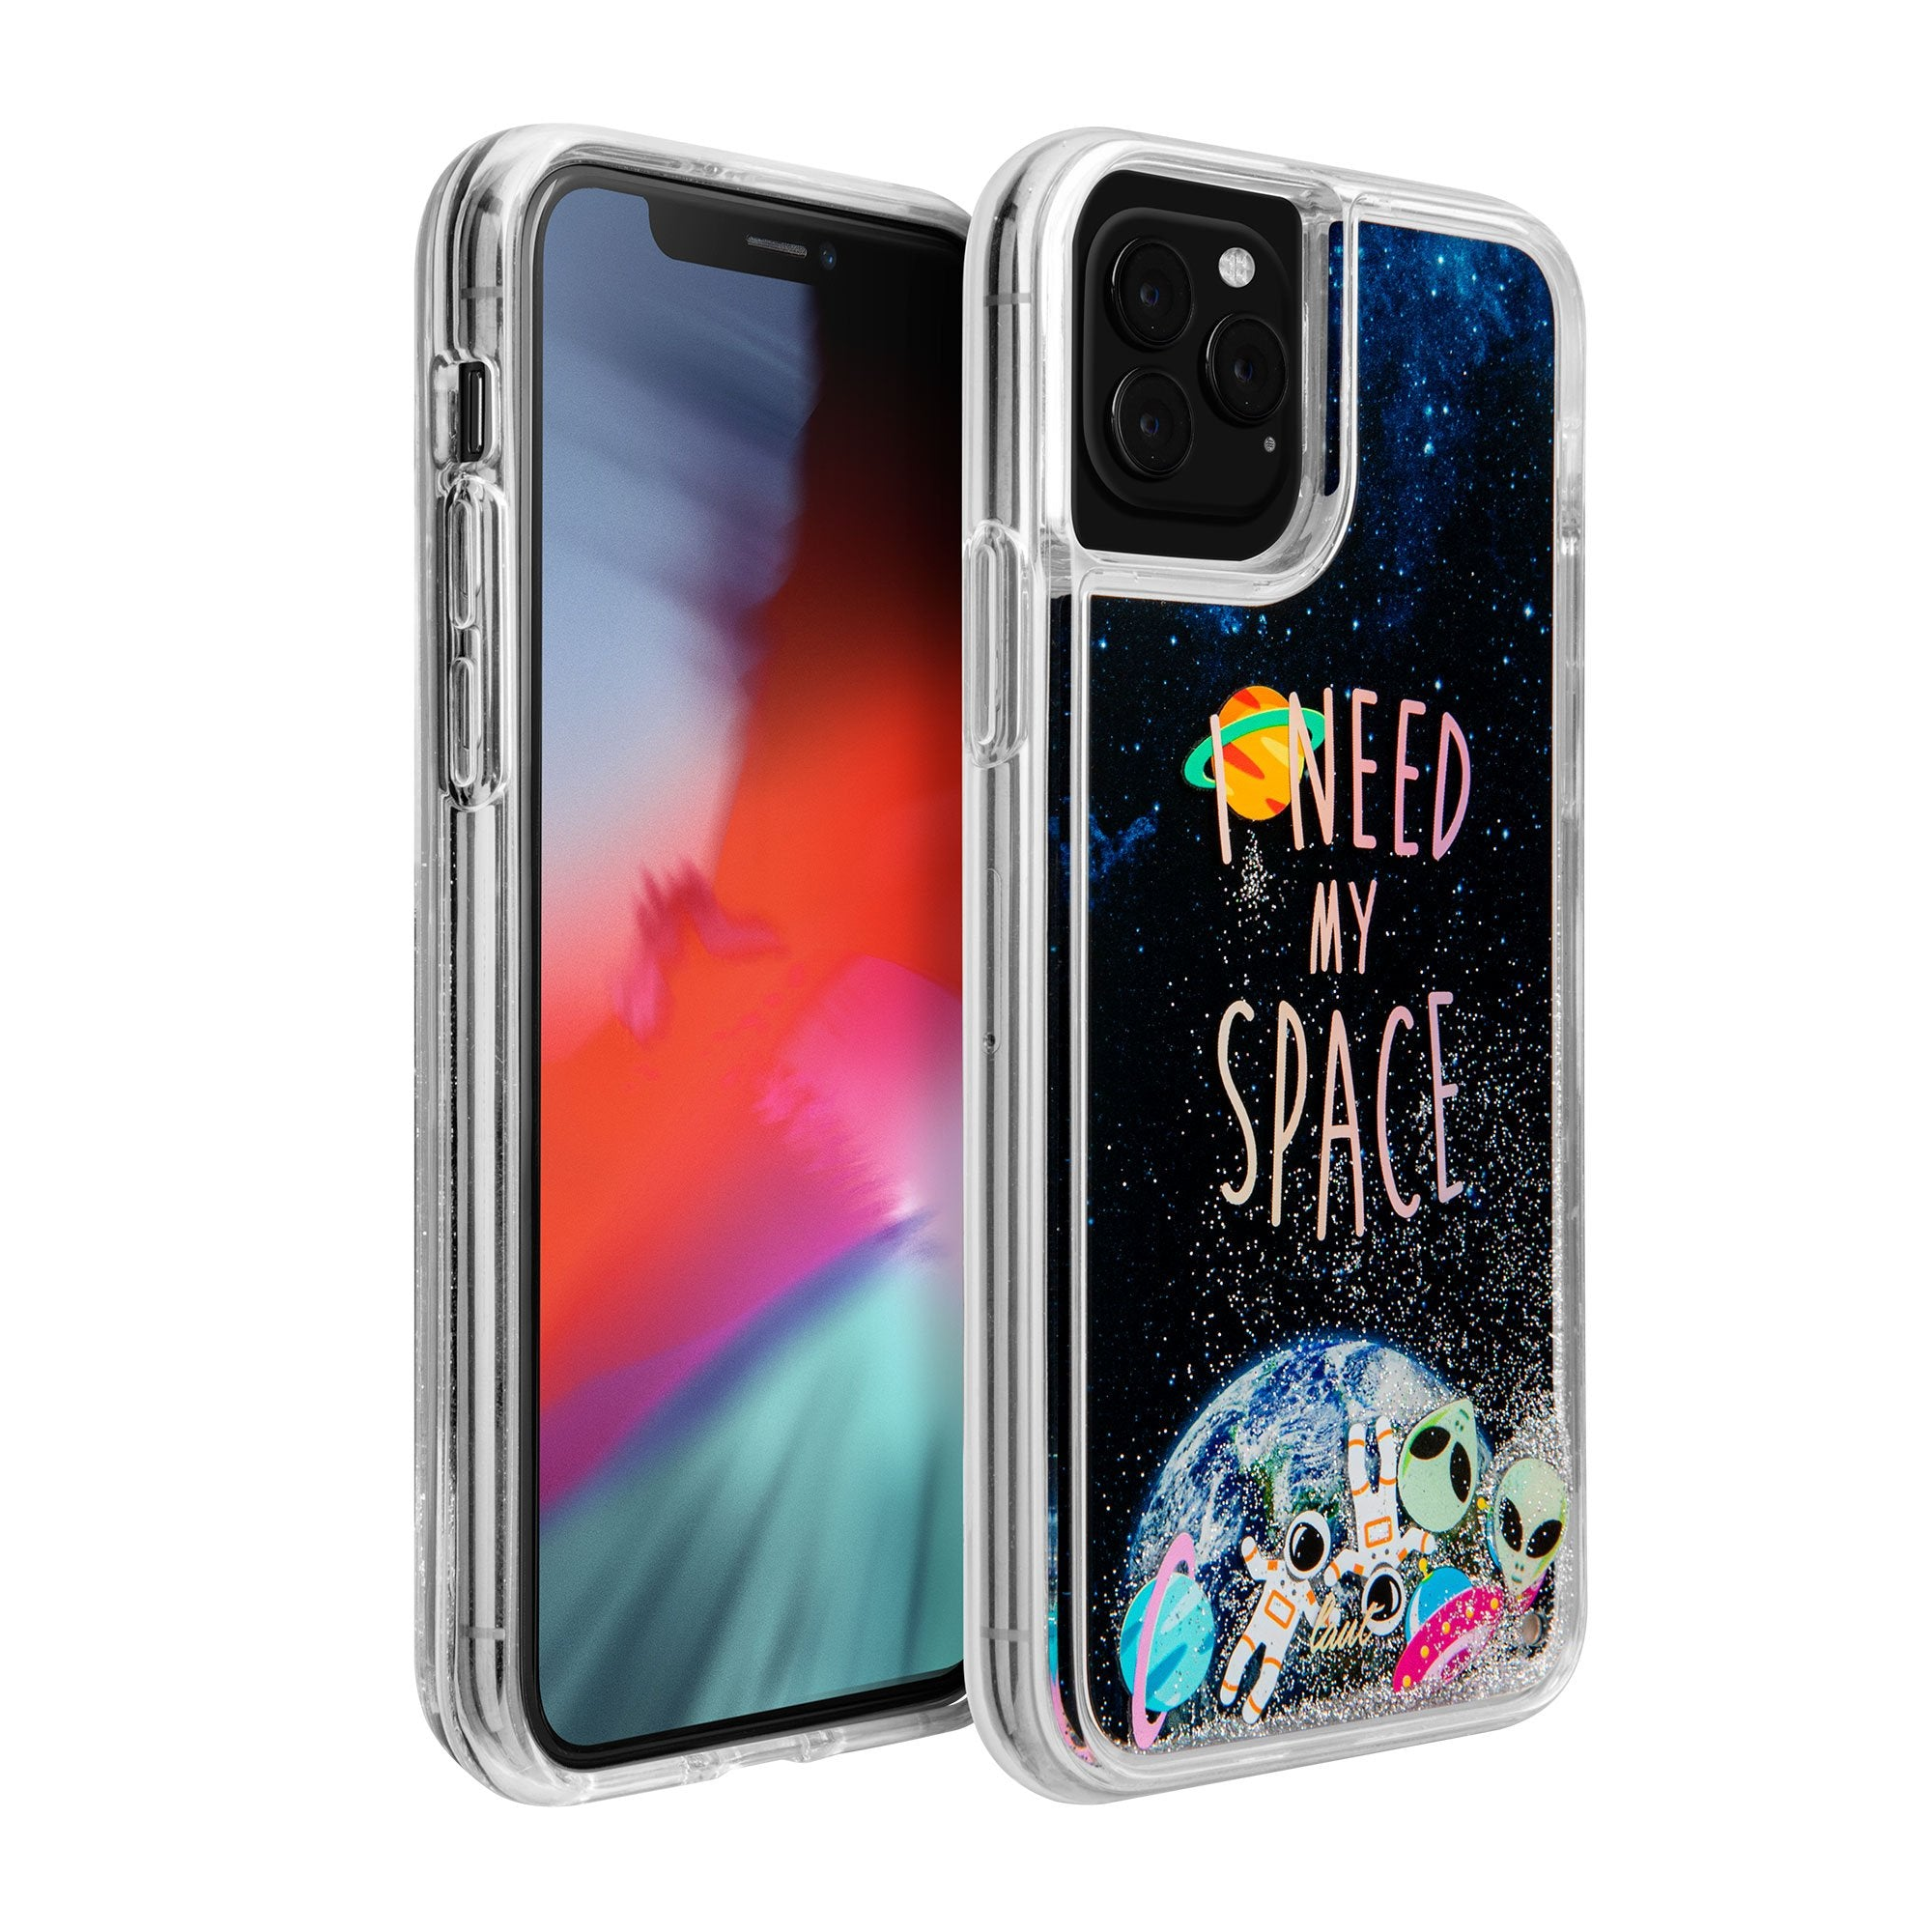 LAUT-GLITTER SPACE for iPhone 11 Series-Case-iPhone 11 / iPhone 11 Pro / iPhone 11 Pro Max